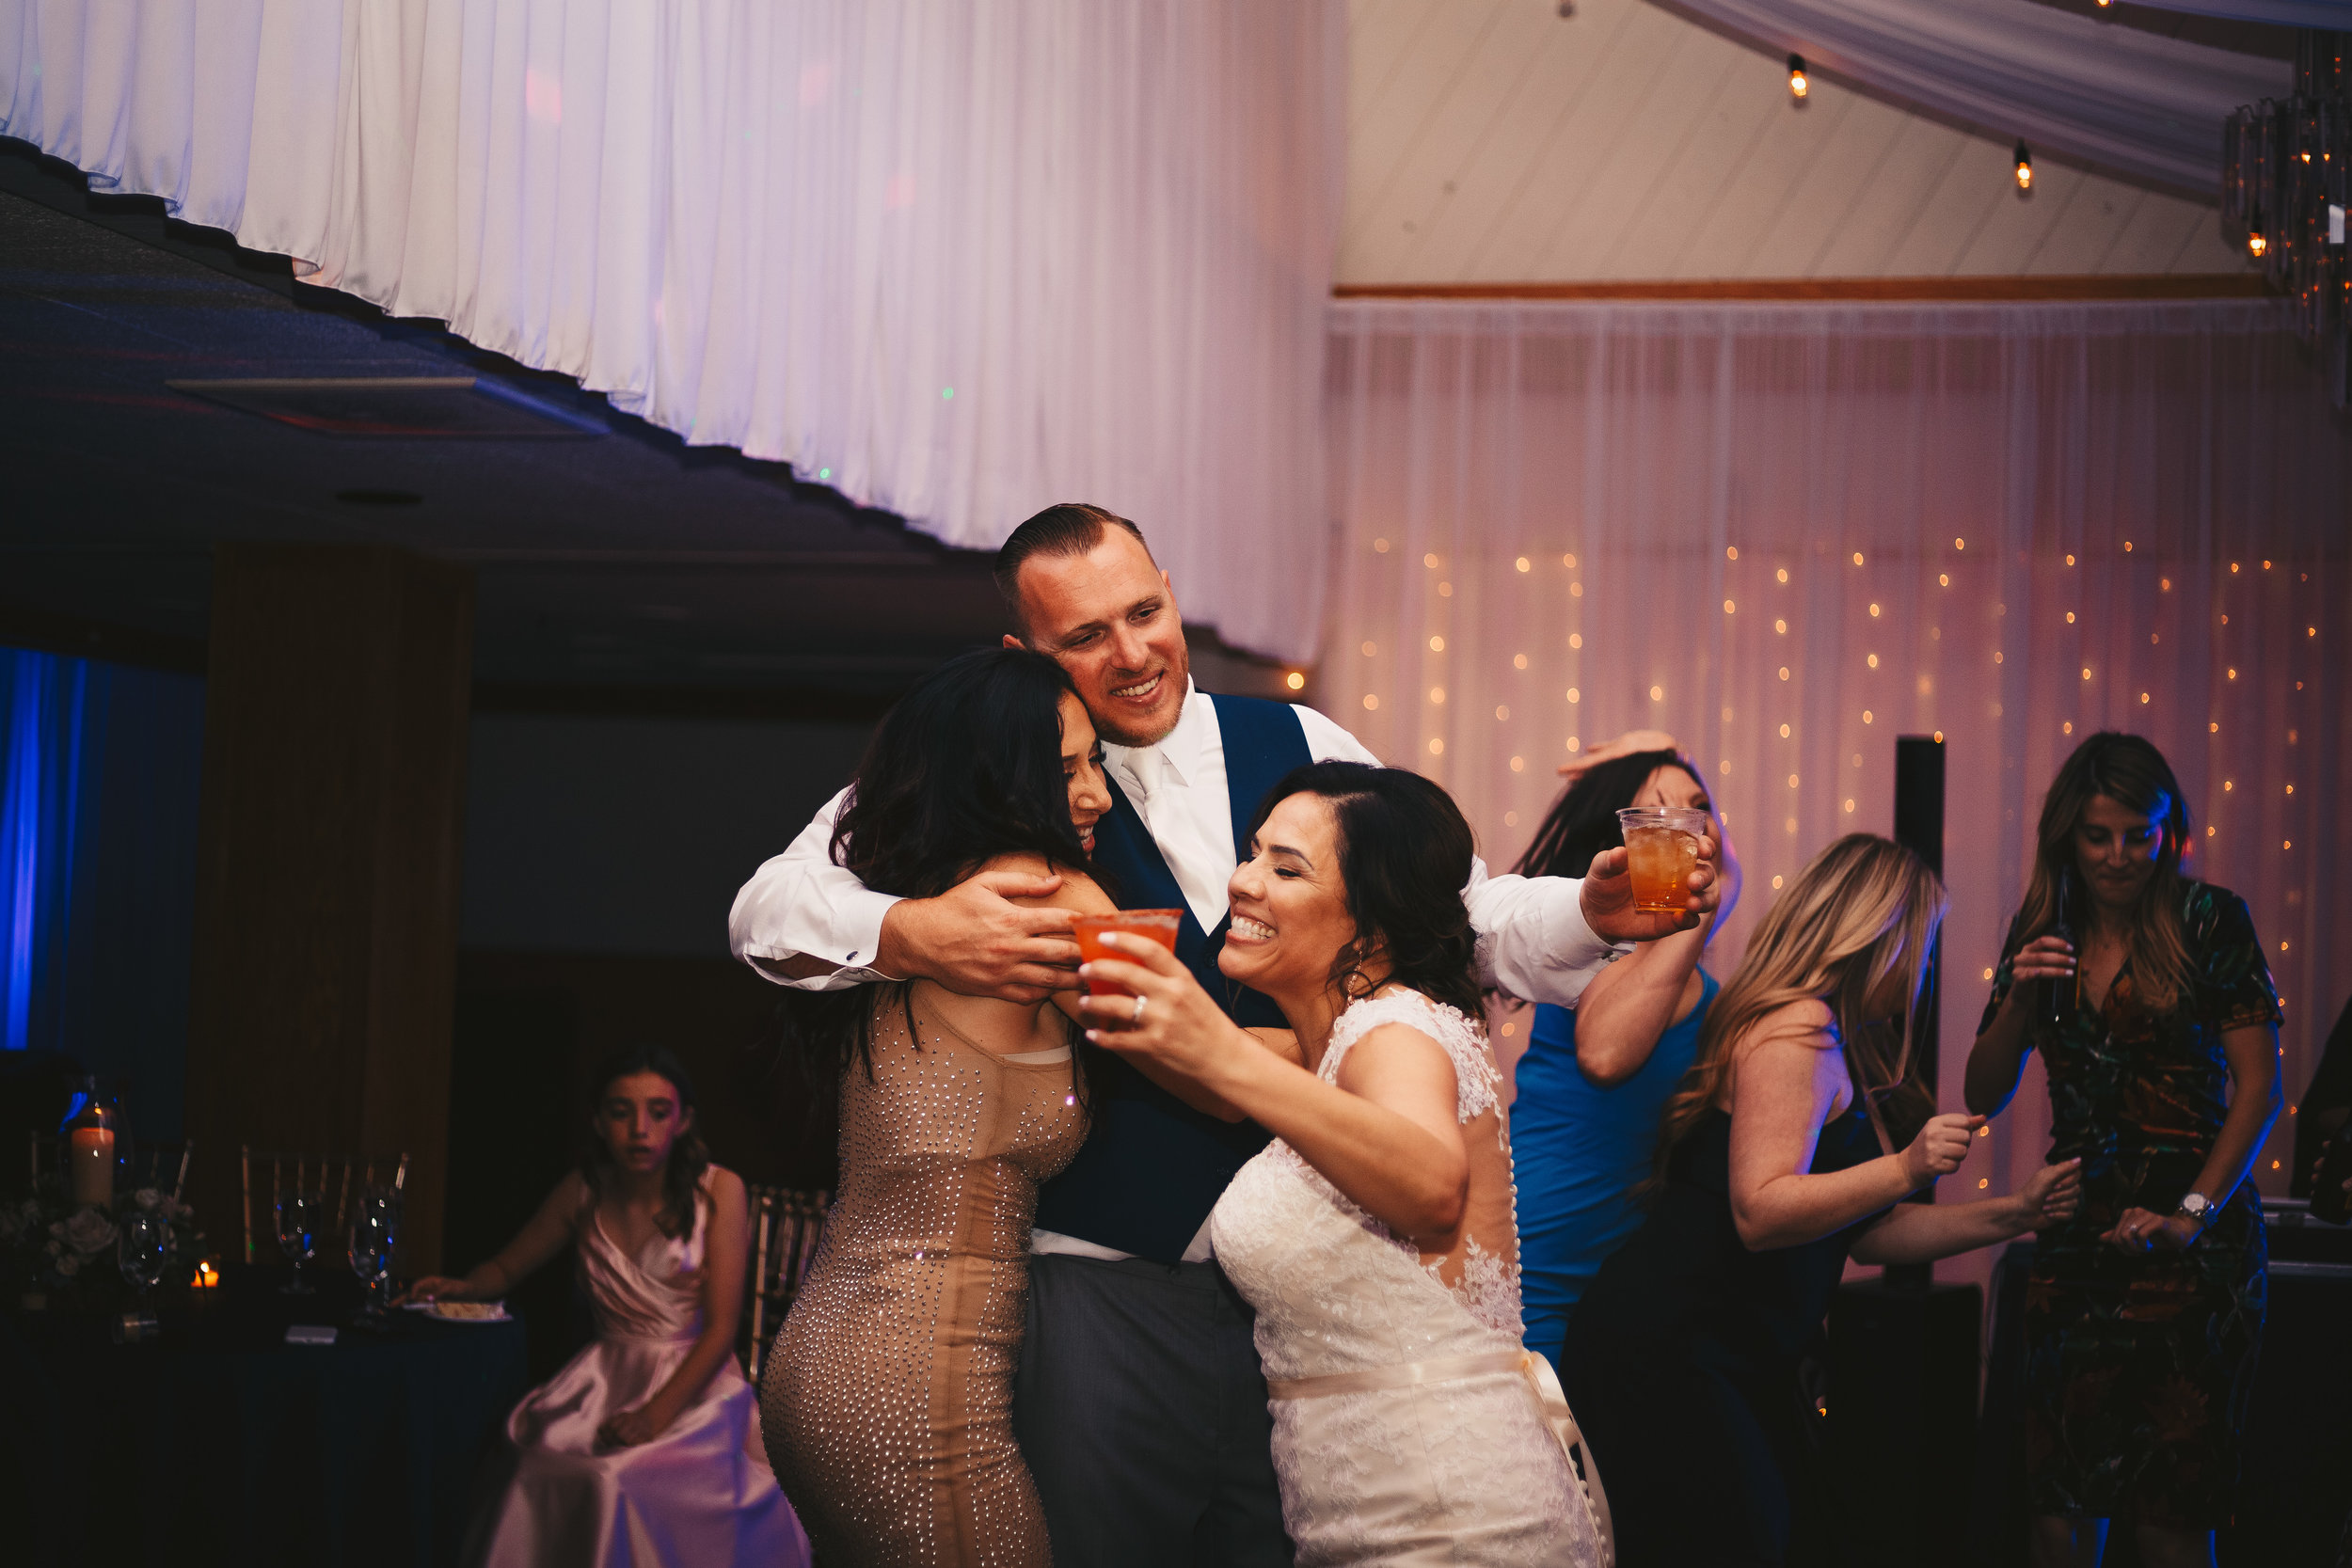 Scott + Veronica Wedding Speeches & Dancing-78.jpg